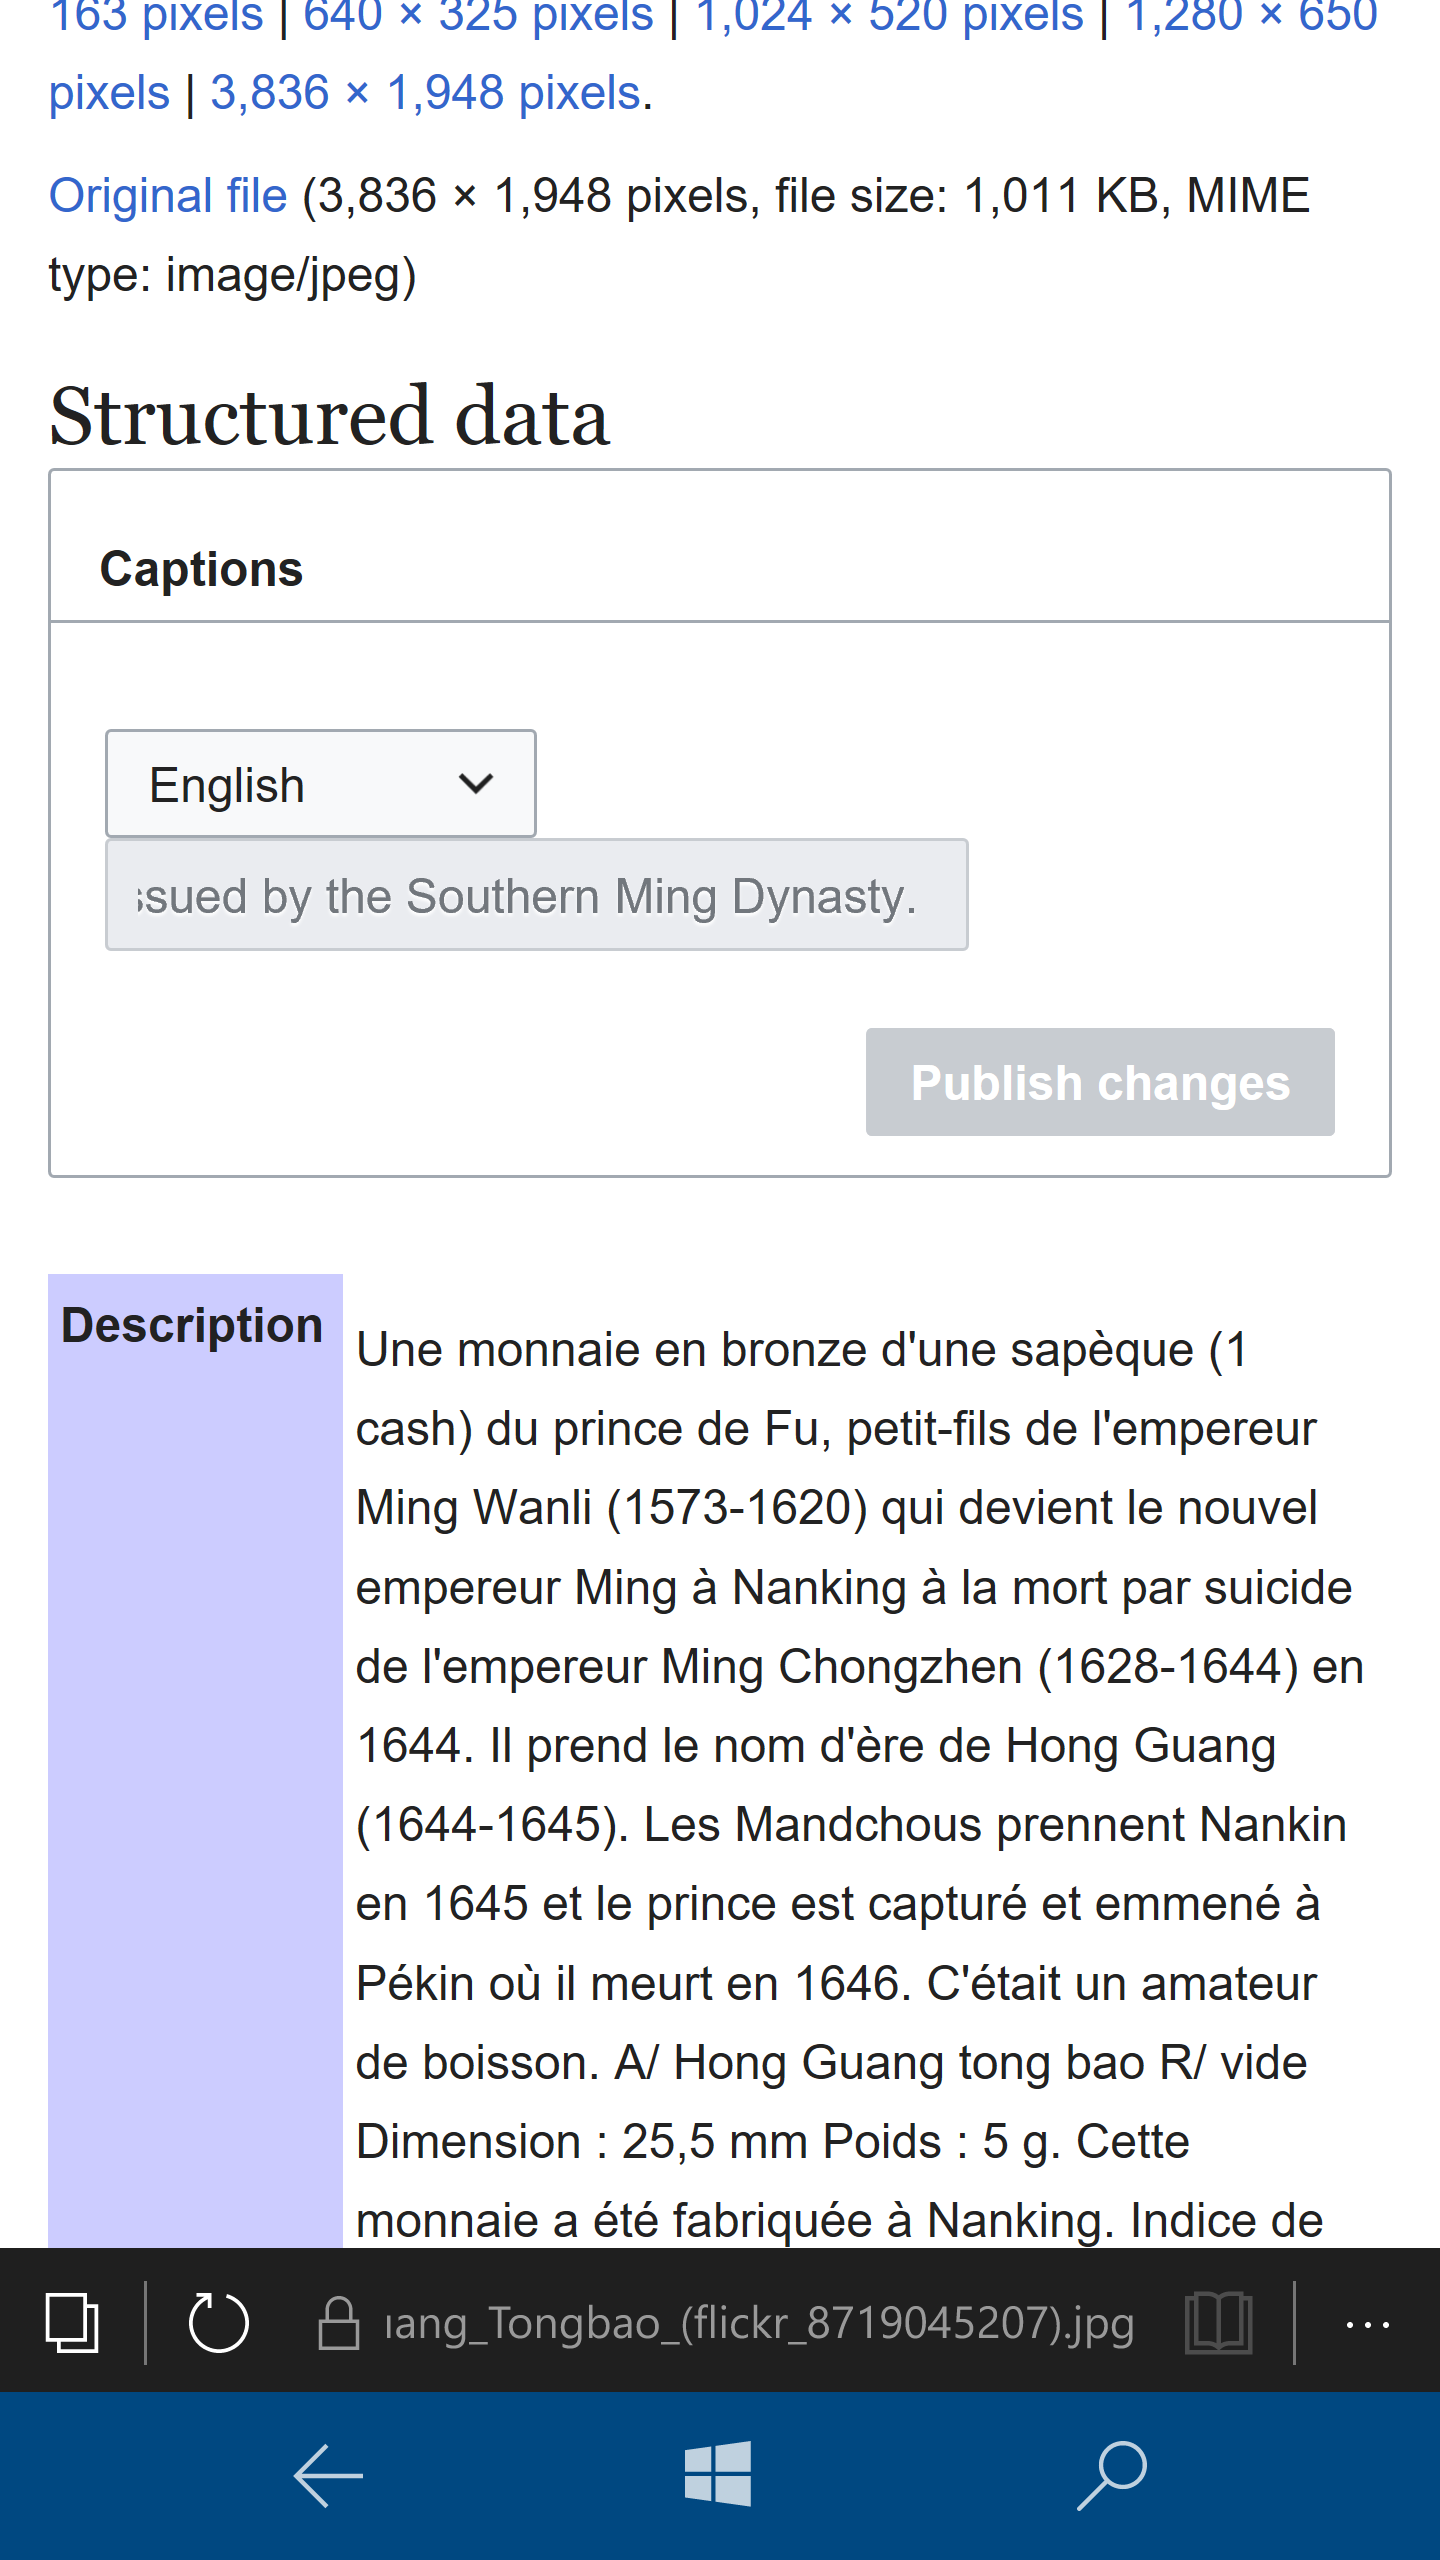 File:File captions attempted to be edited on the mobile